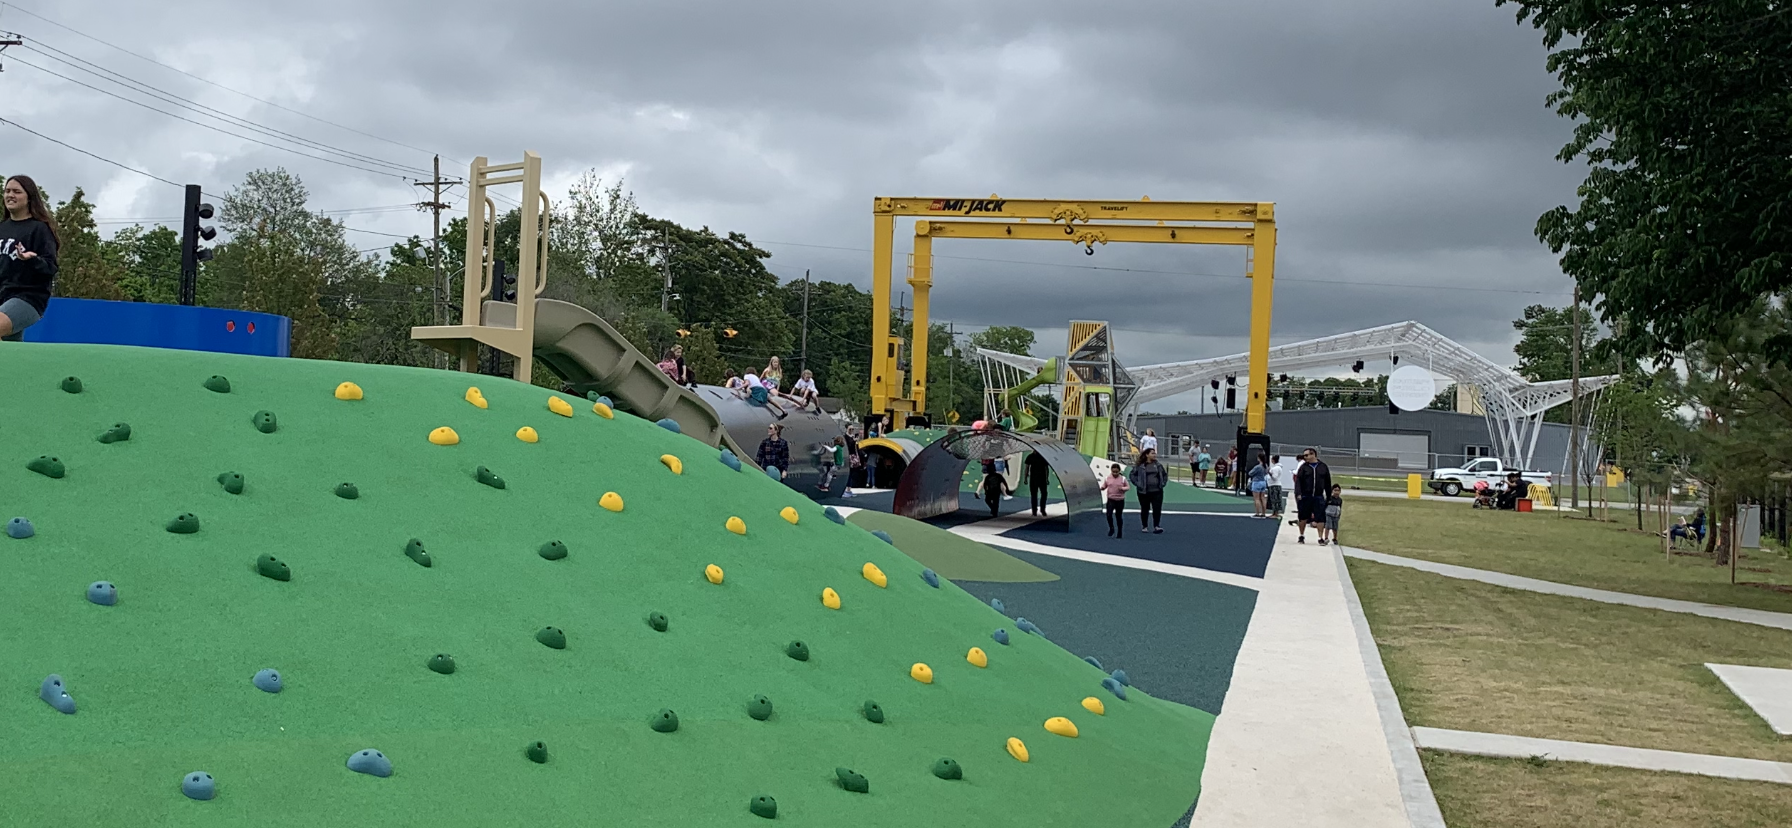 A playground area with a small rock wall and slide at Railyard Park in Rogers